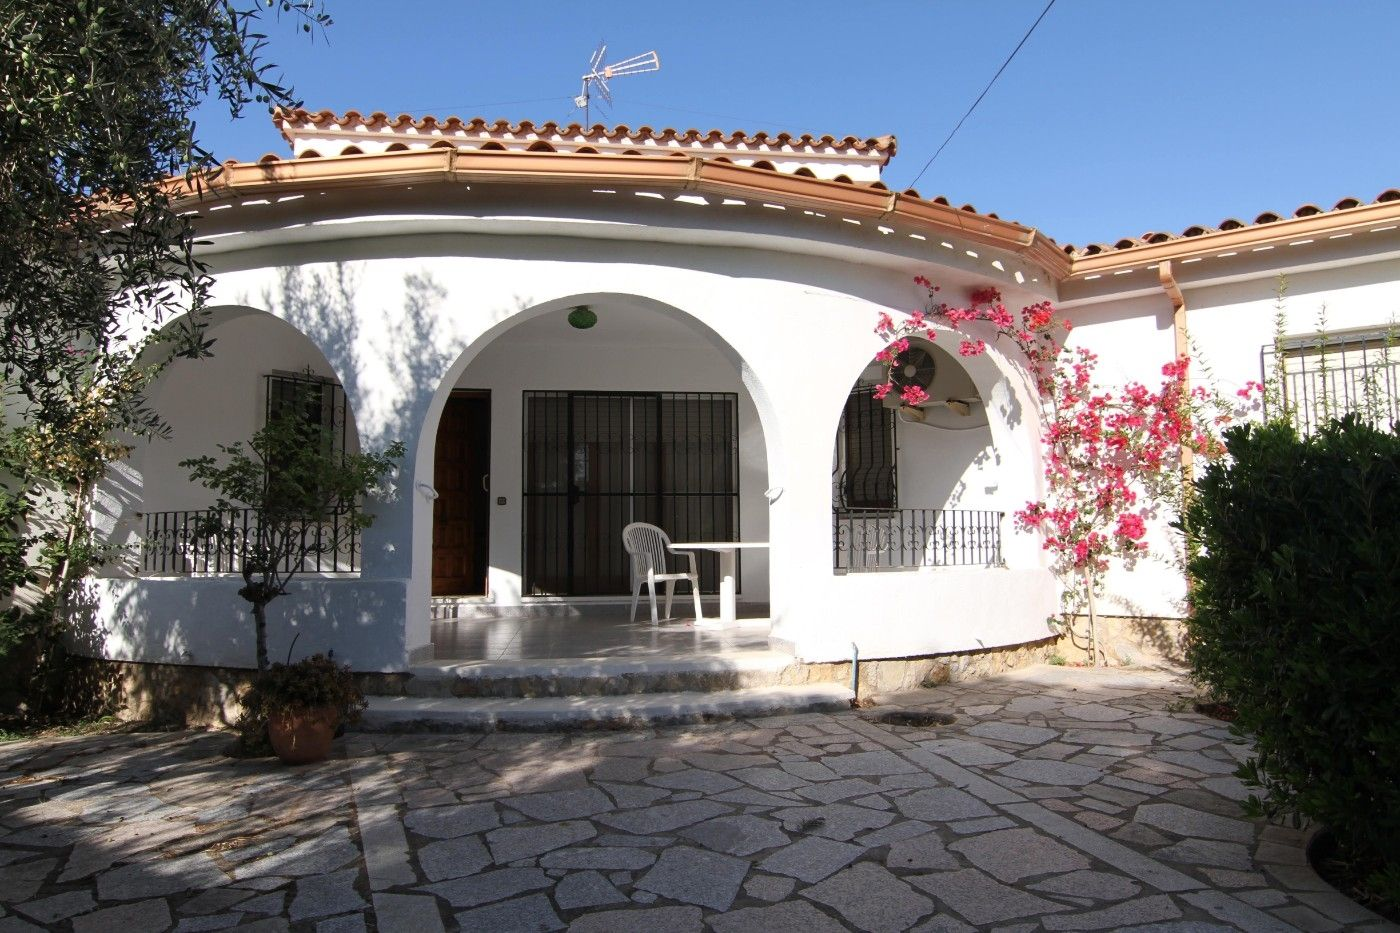 Miete Chalet in Carrer saturn, 25. Alquilo chalet 100 mts playa